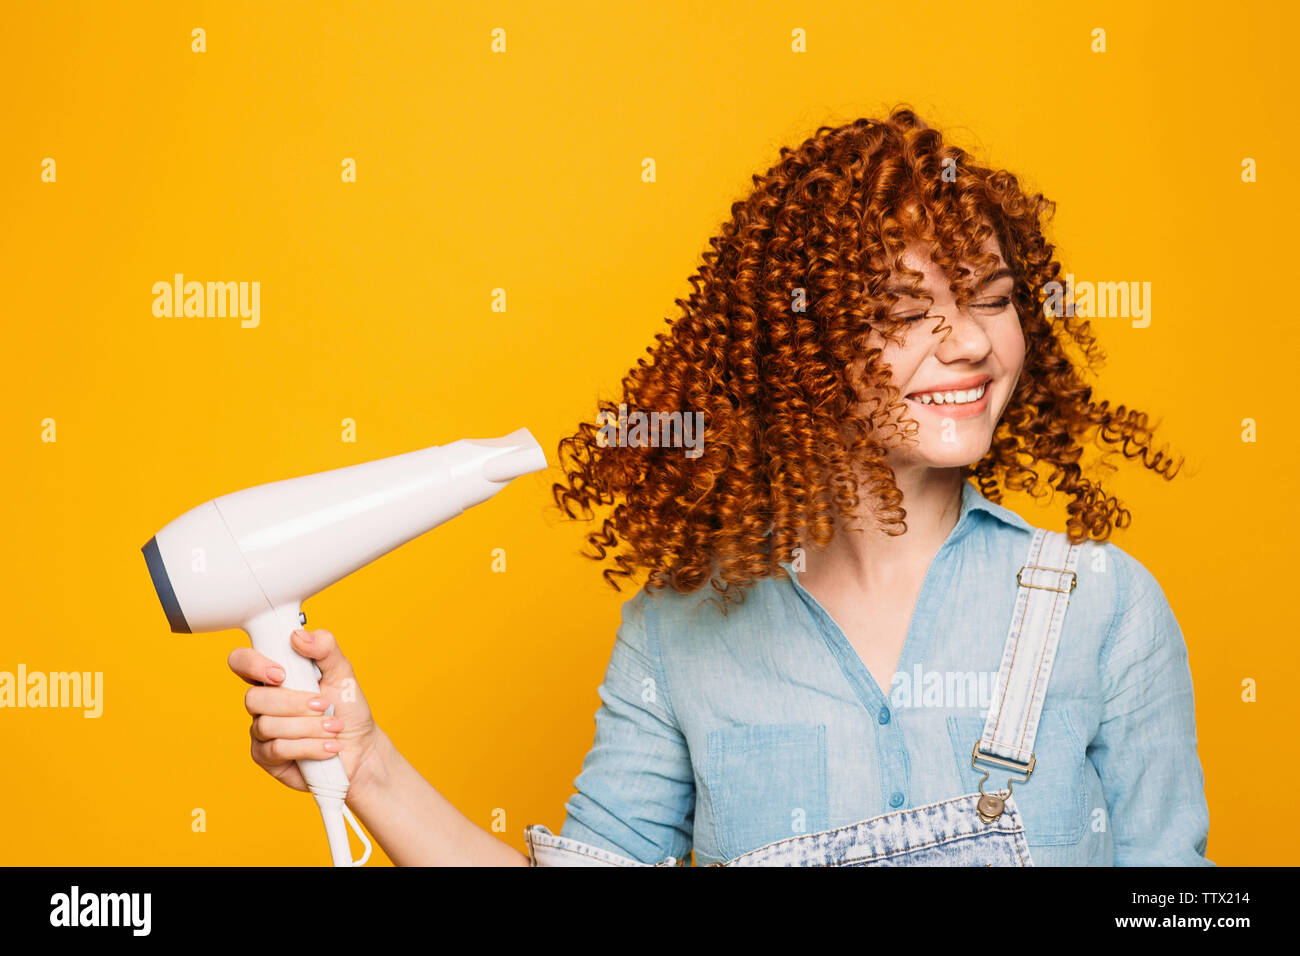 curly red-haired woman using hair dryer on yellow background. Making perfect curls Stock Photo